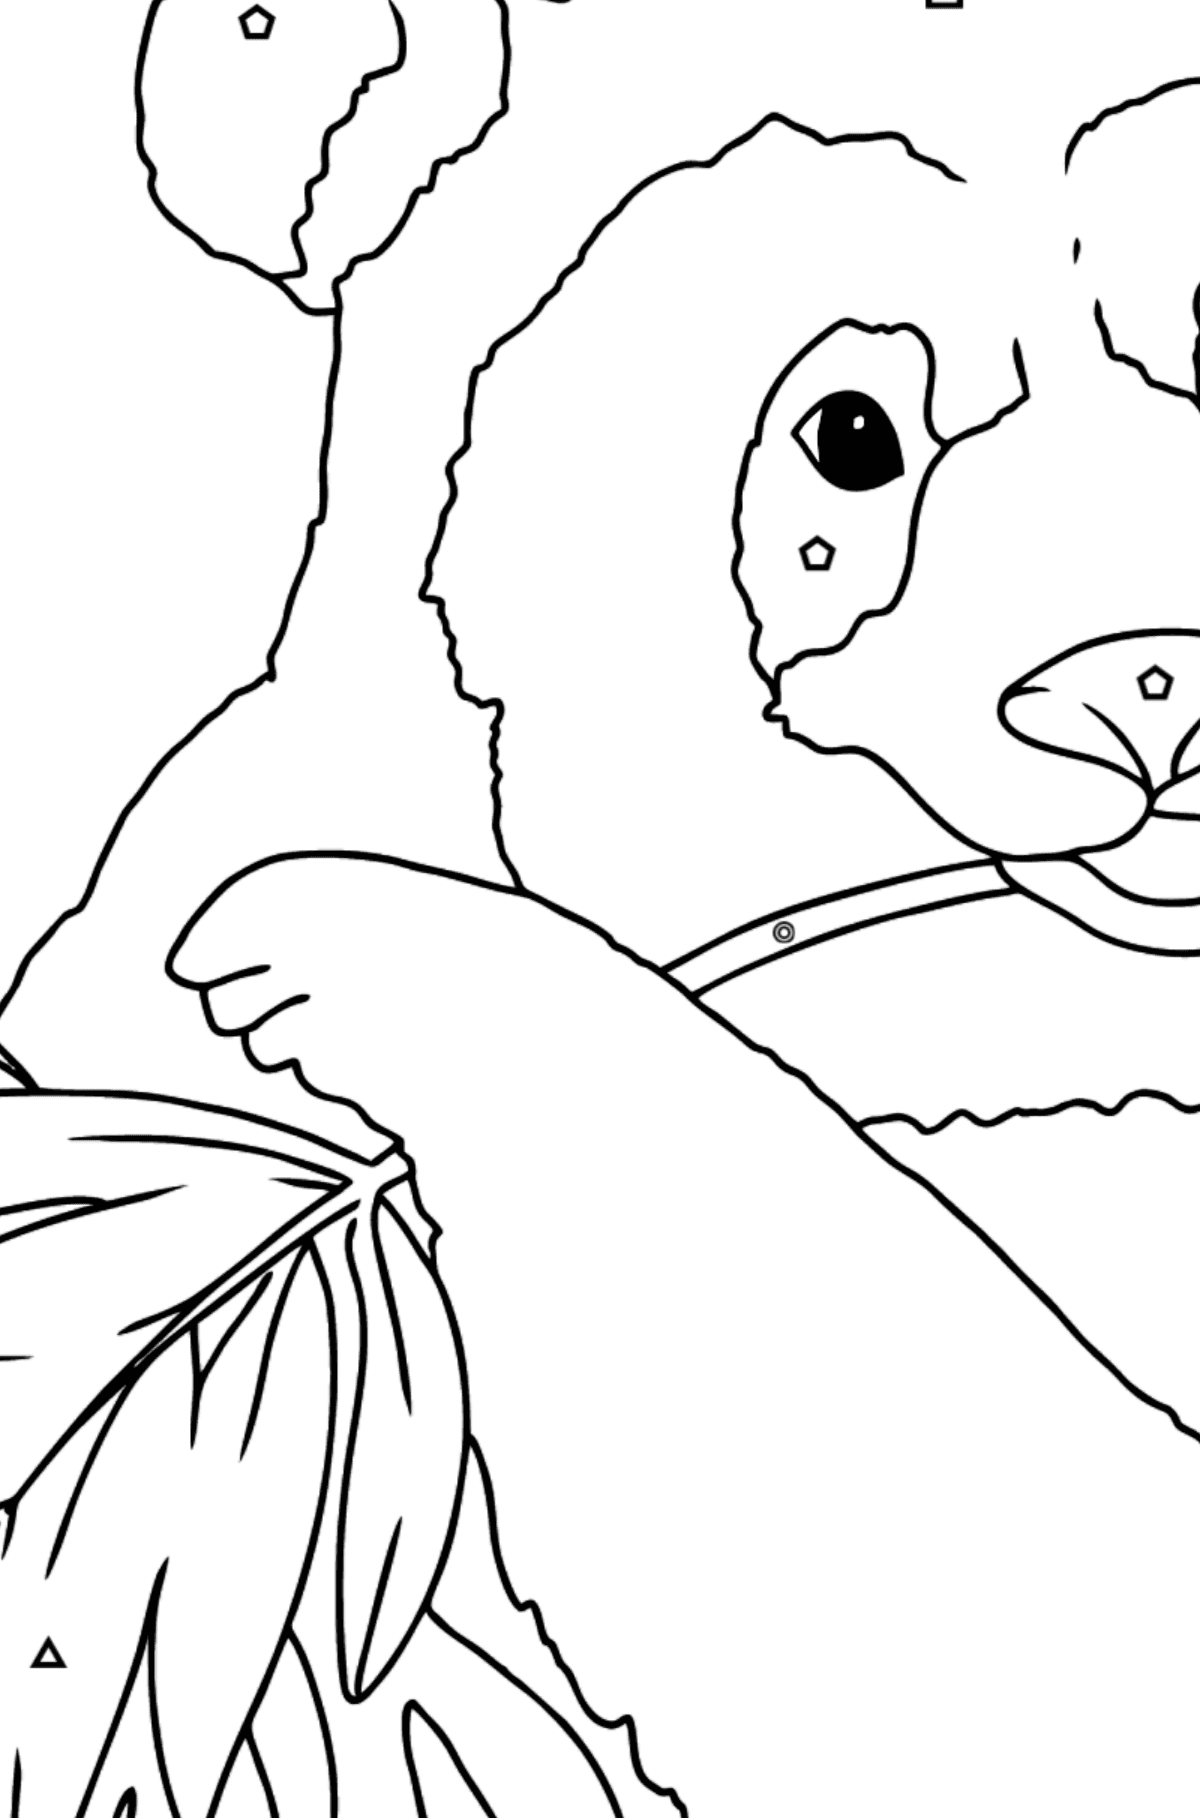 Coloring Page  - A Panda is Eating Leaves - Coloring by Geometric Shapes for Kids